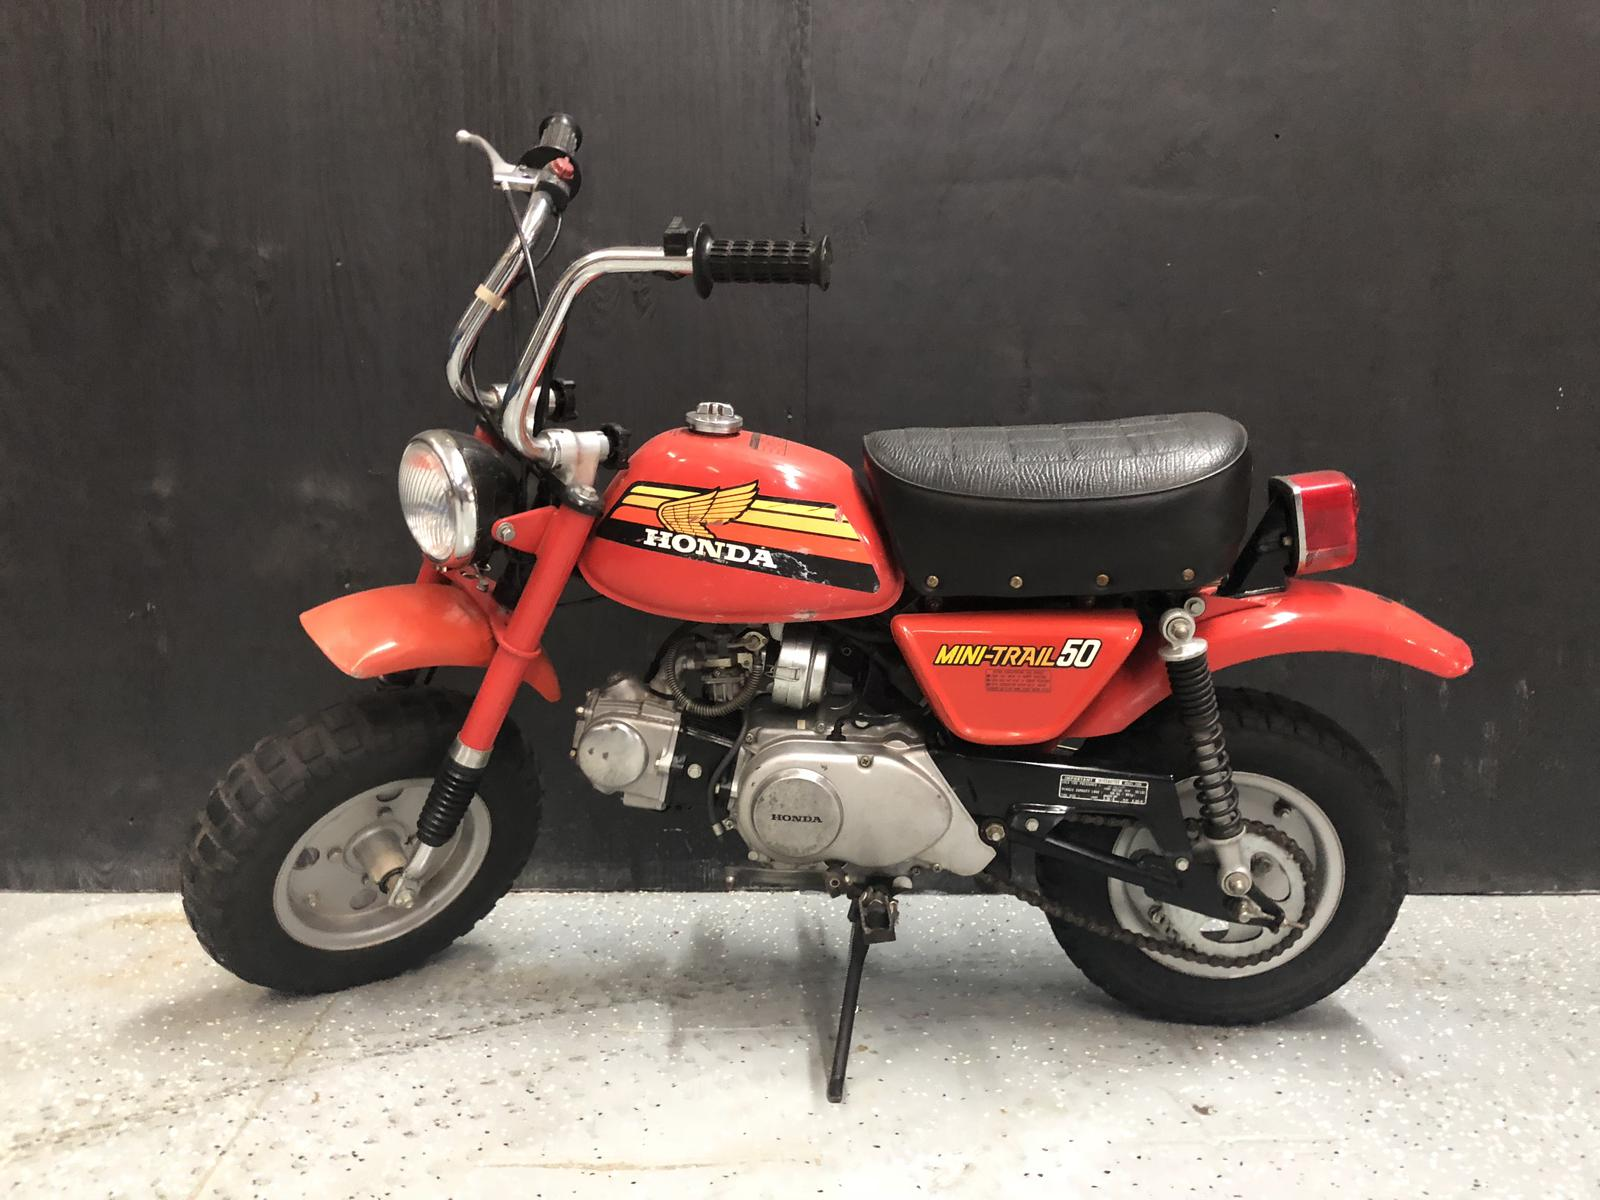 Honda 50 Mini Trail Bike For Sale Wiring Diagrams 1970 70 In Selma Al Alabama Powersports 334 Rh Alapowersports Com First